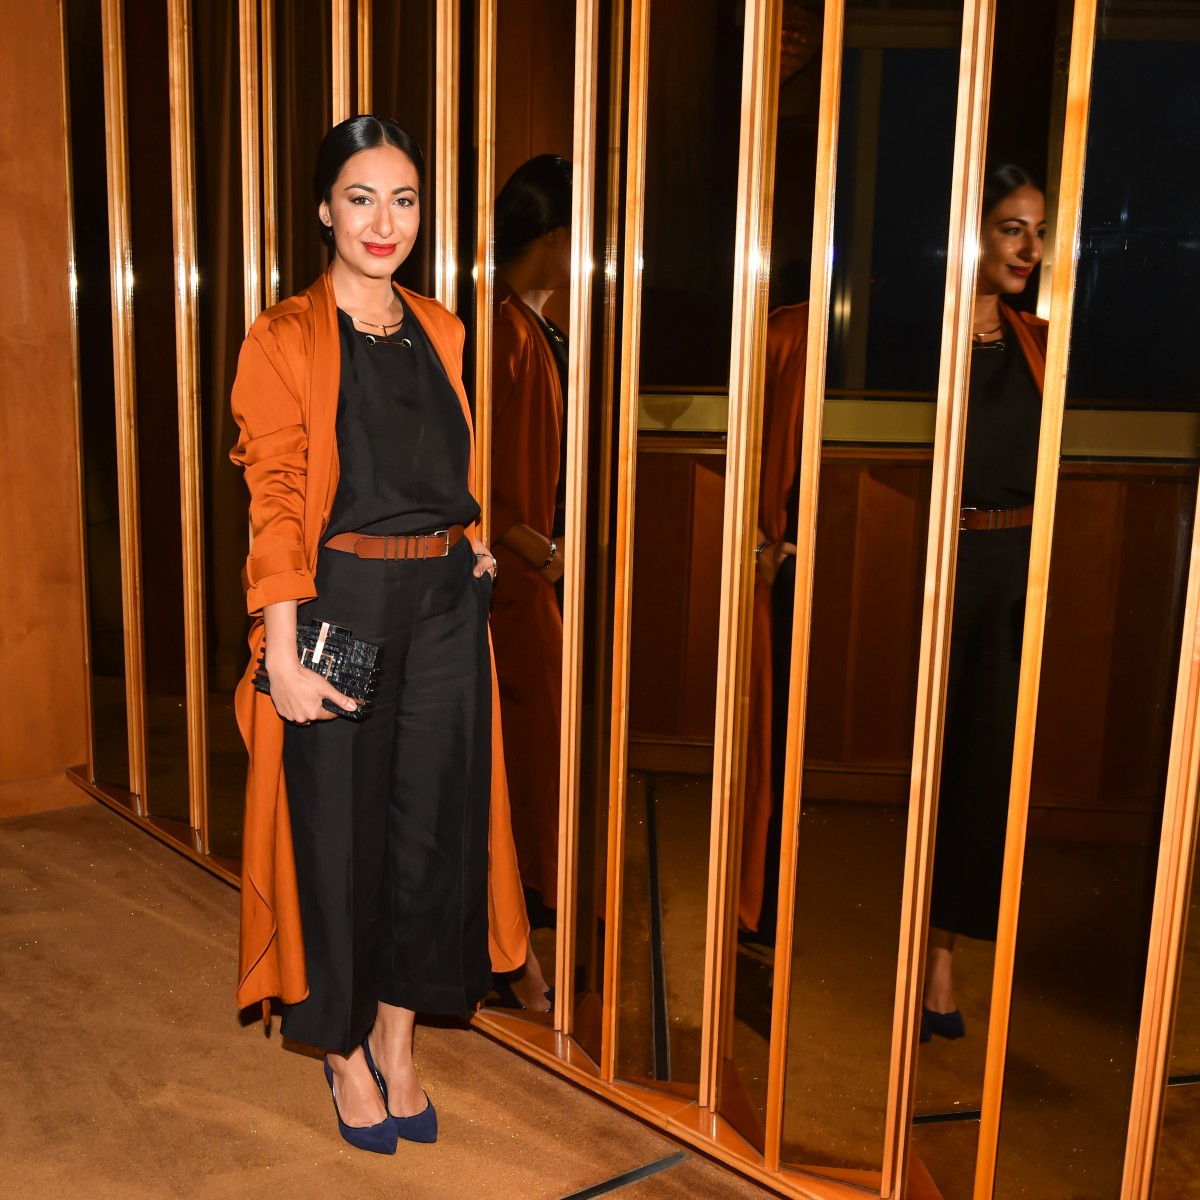 MAX MARA WHITNEY Bag Launch Party